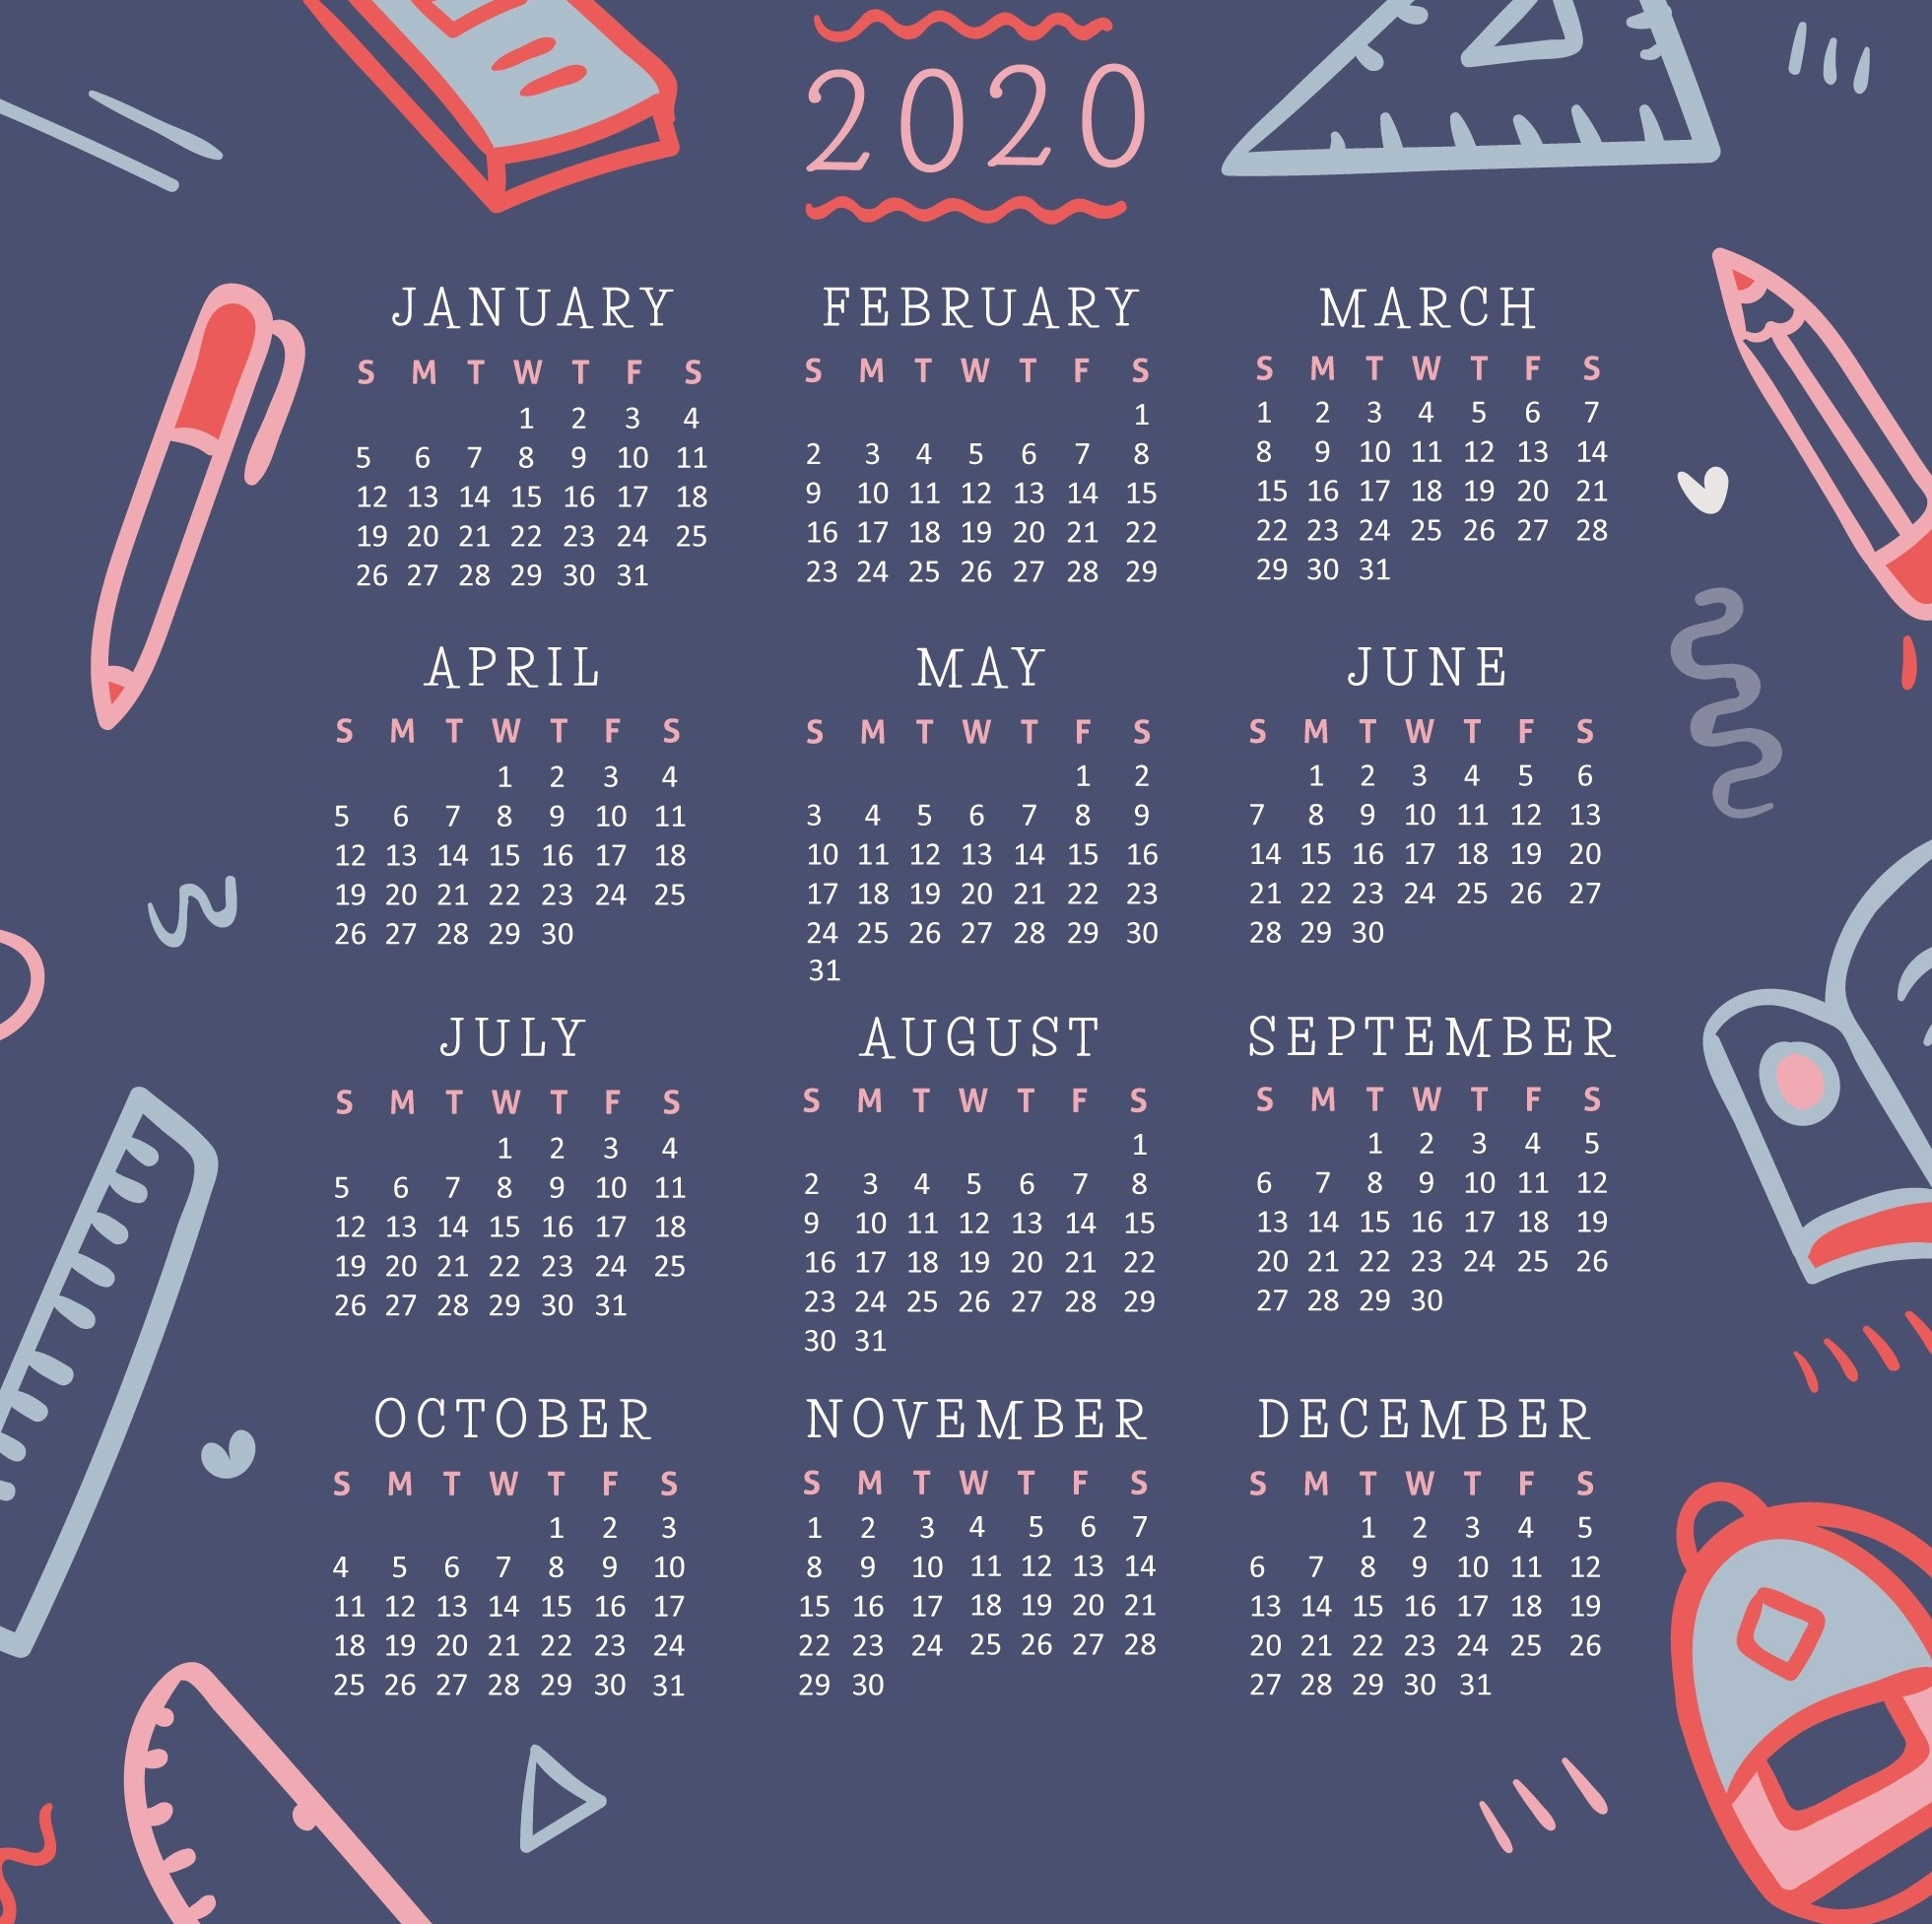 53+ Calendar 2020 Wallpapers on WallpaperSafari